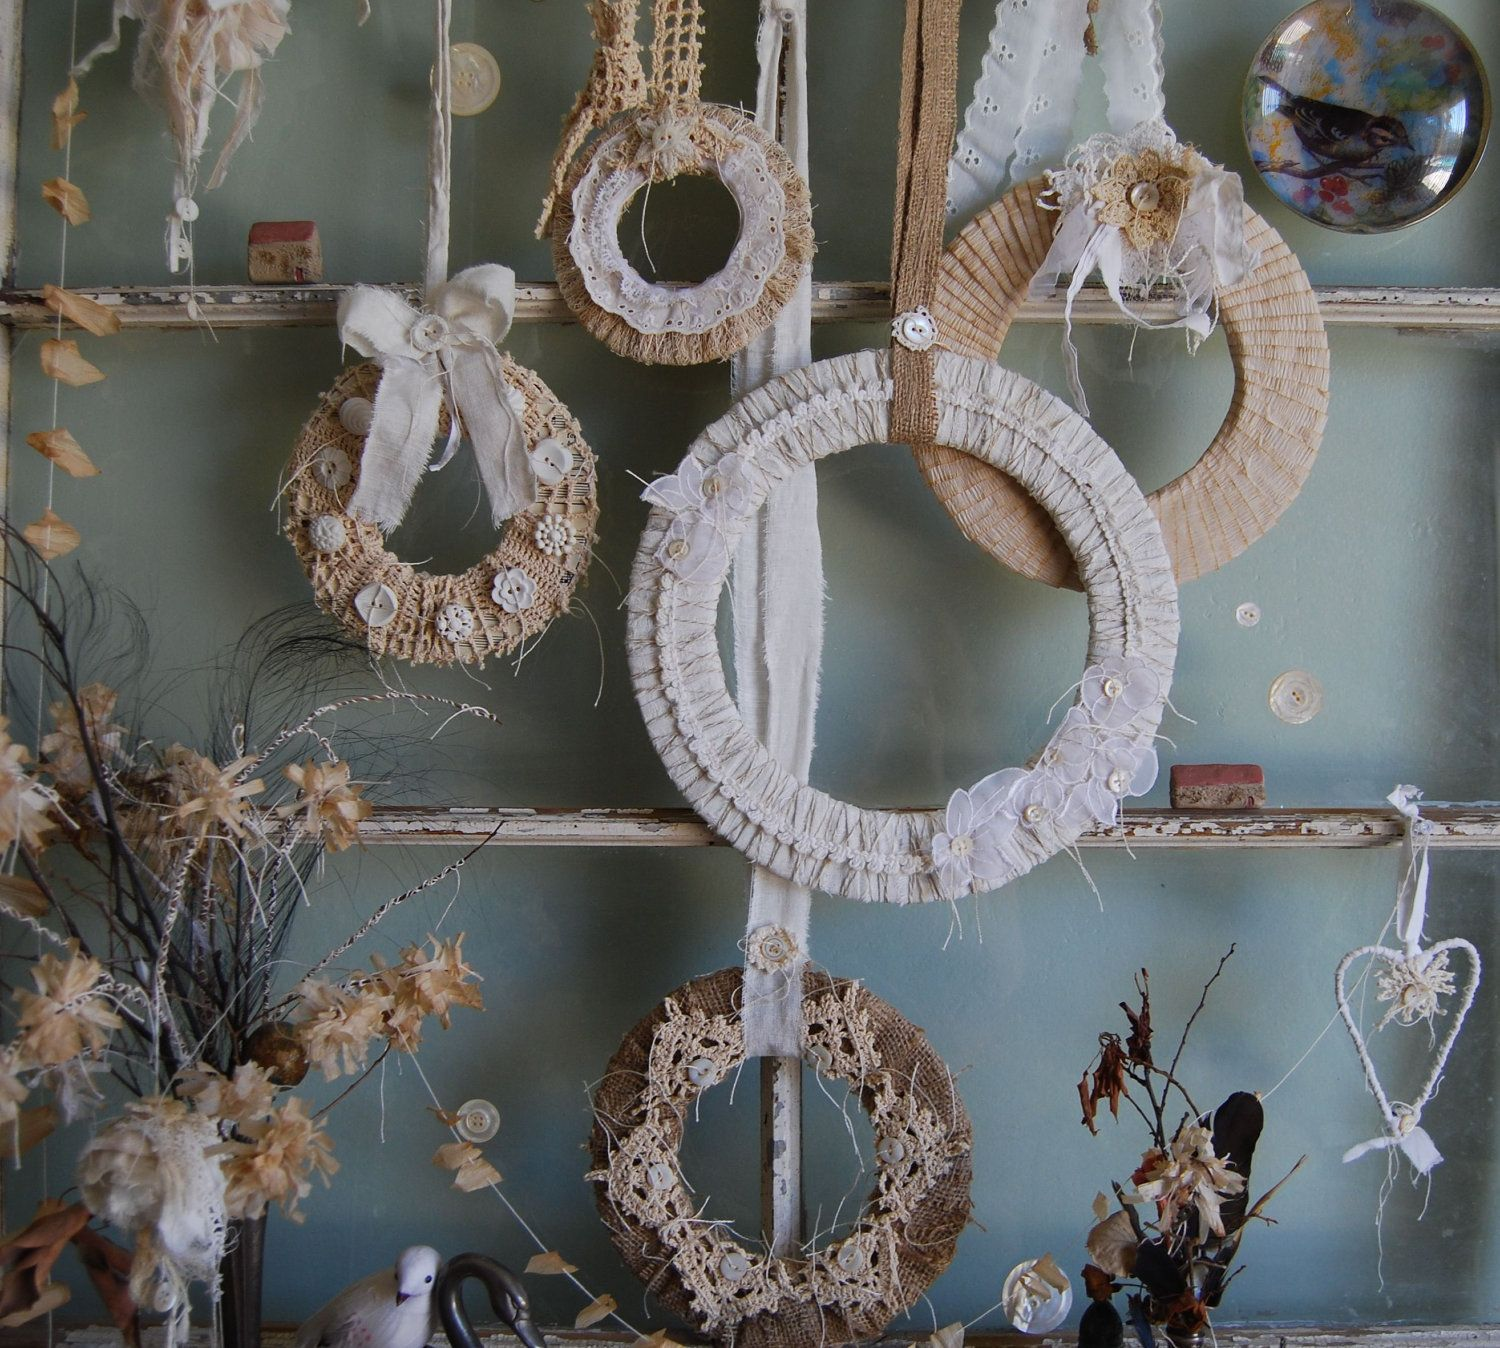 My Favorite Things - Abandoned Vintage Linen, Lace, and Burlap Set of Wreaths for Shabby Chic Holiday and Home Decorating